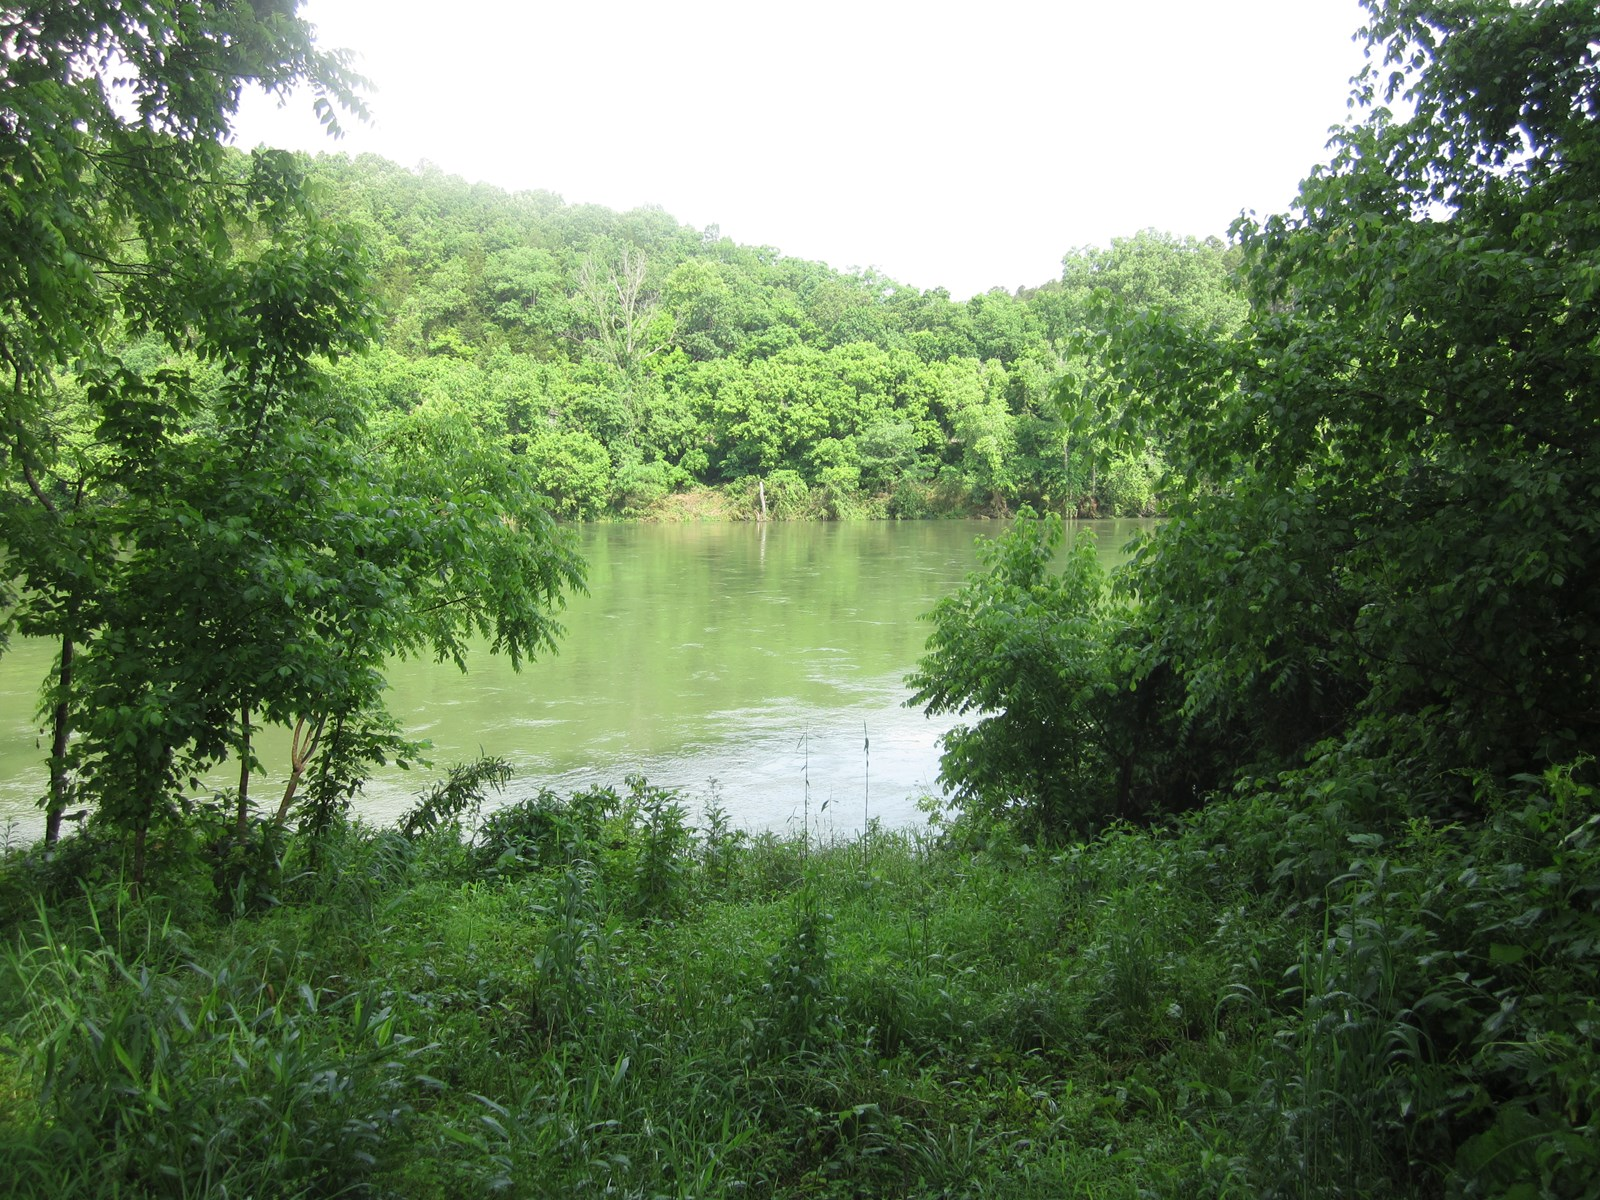 WHITE RIVER LAND FOR SALE NEAR NORFORK, ARKANSAS!